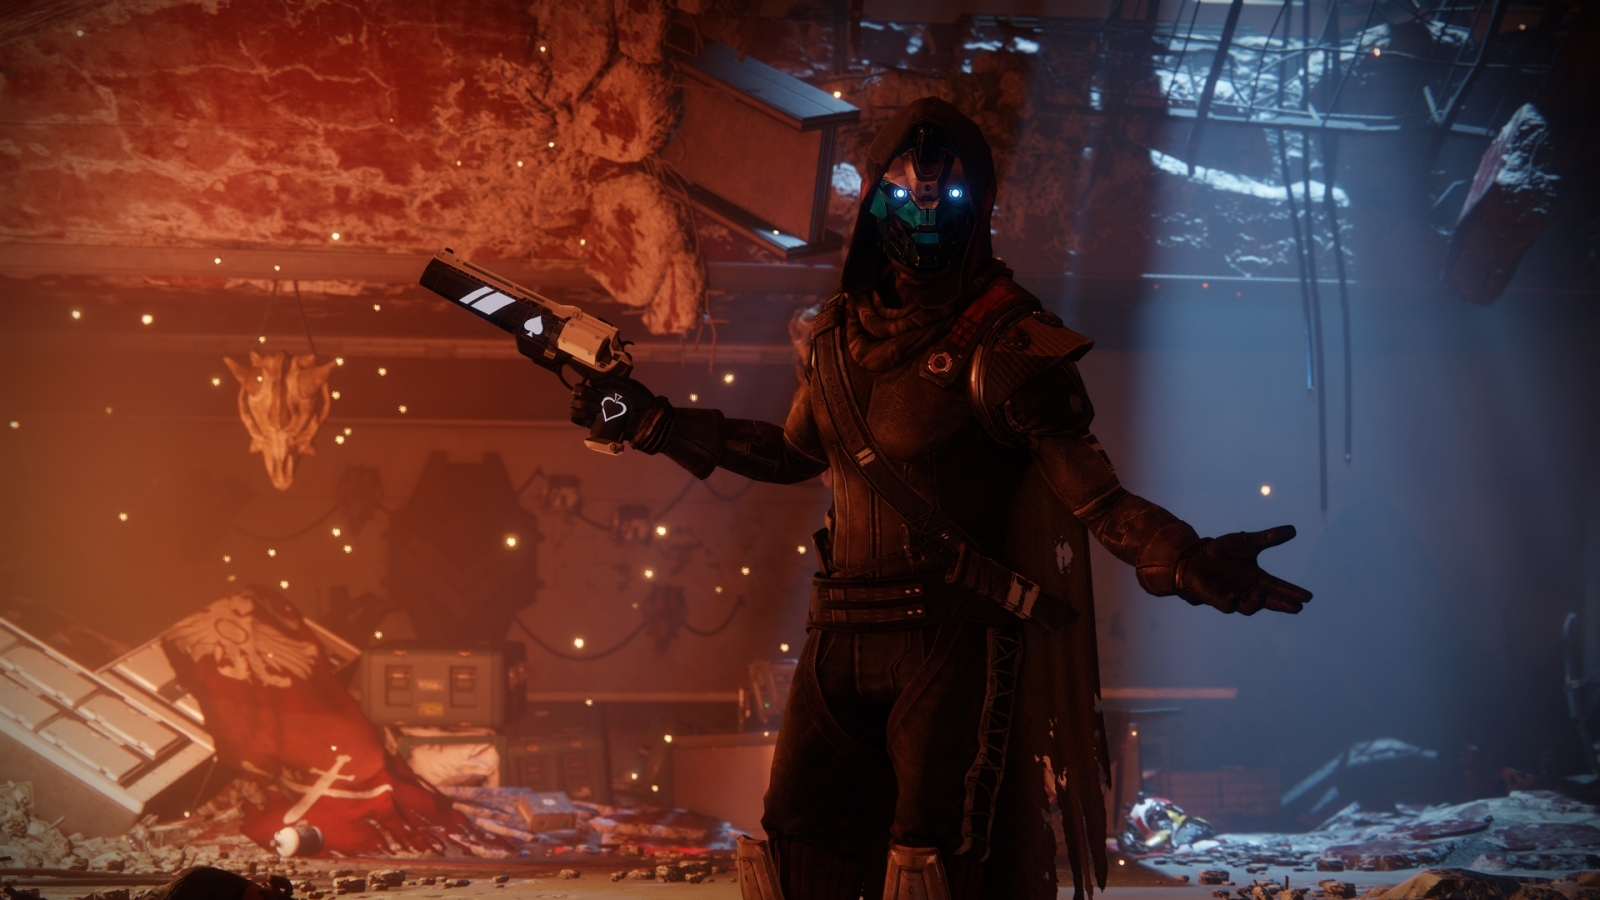 Destiny 2 beta version extended, confirmed developer Bungie